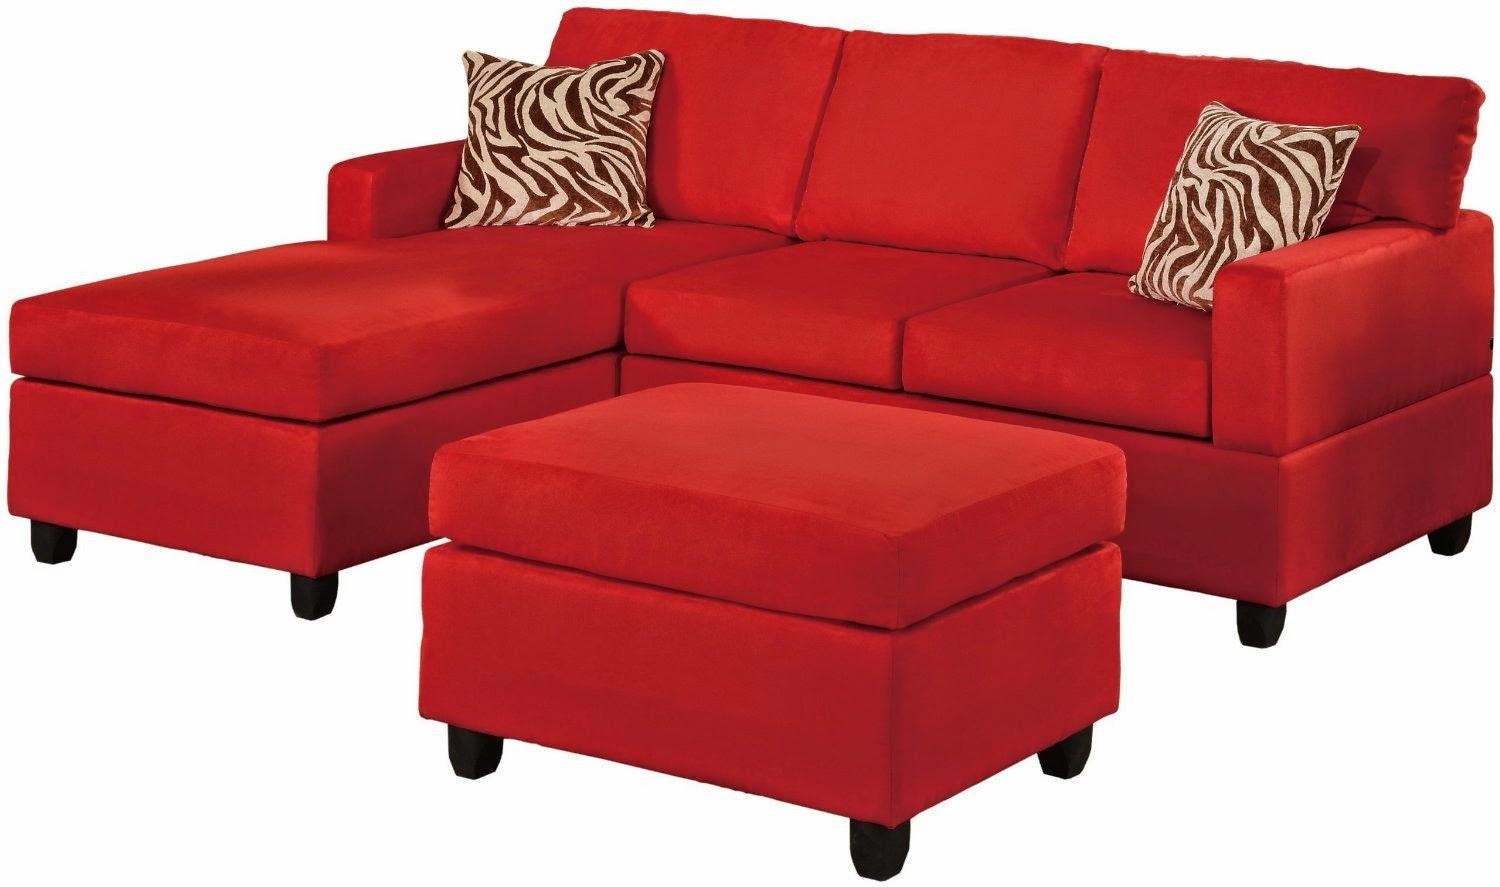 Red Sectional Sofas Cheap | Centerfieldbar Intended For Red Microfiber Sectional Sofas (View 19 of 21)